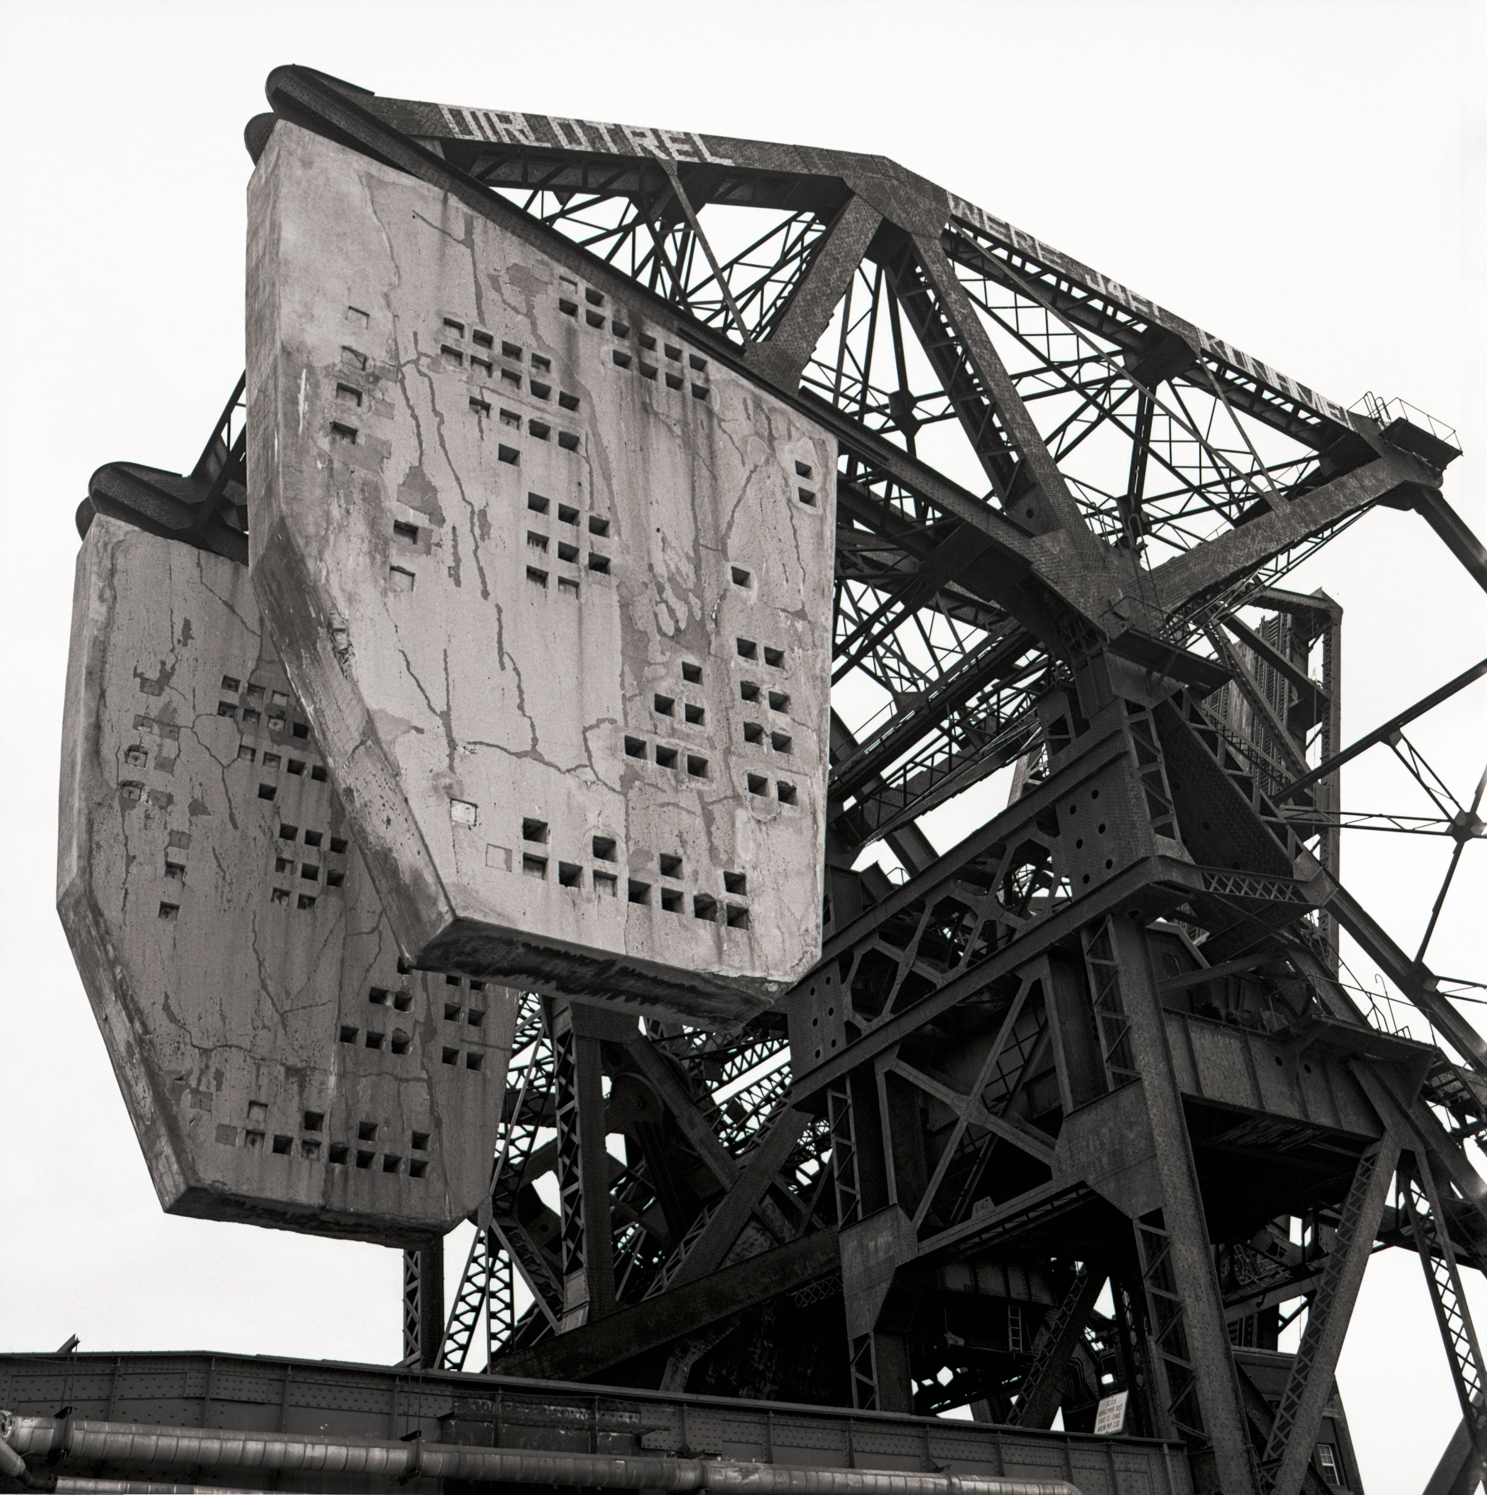 Railroad Bridge with Counterweights Chicago River